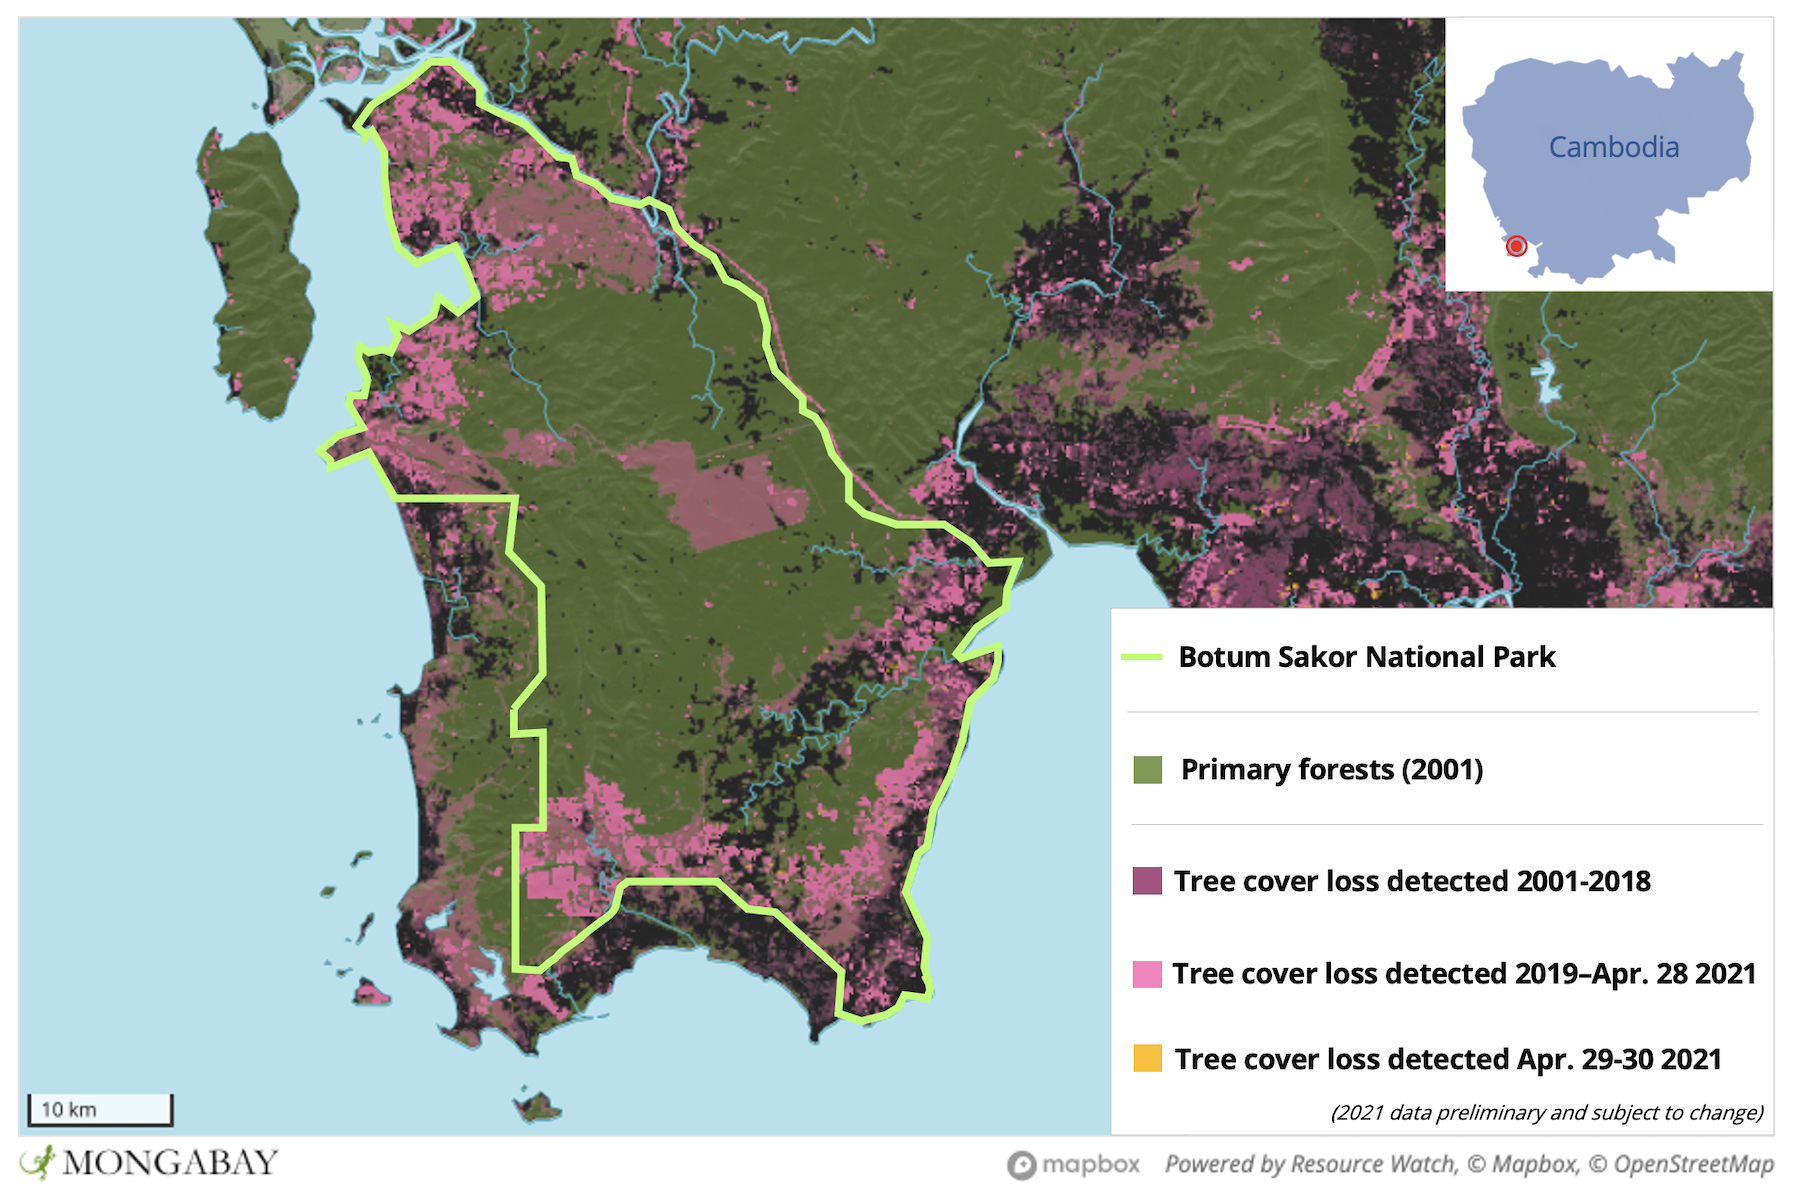 Satellite data show large areas of Botum Sakor National Park have been cleared over the last two decades.